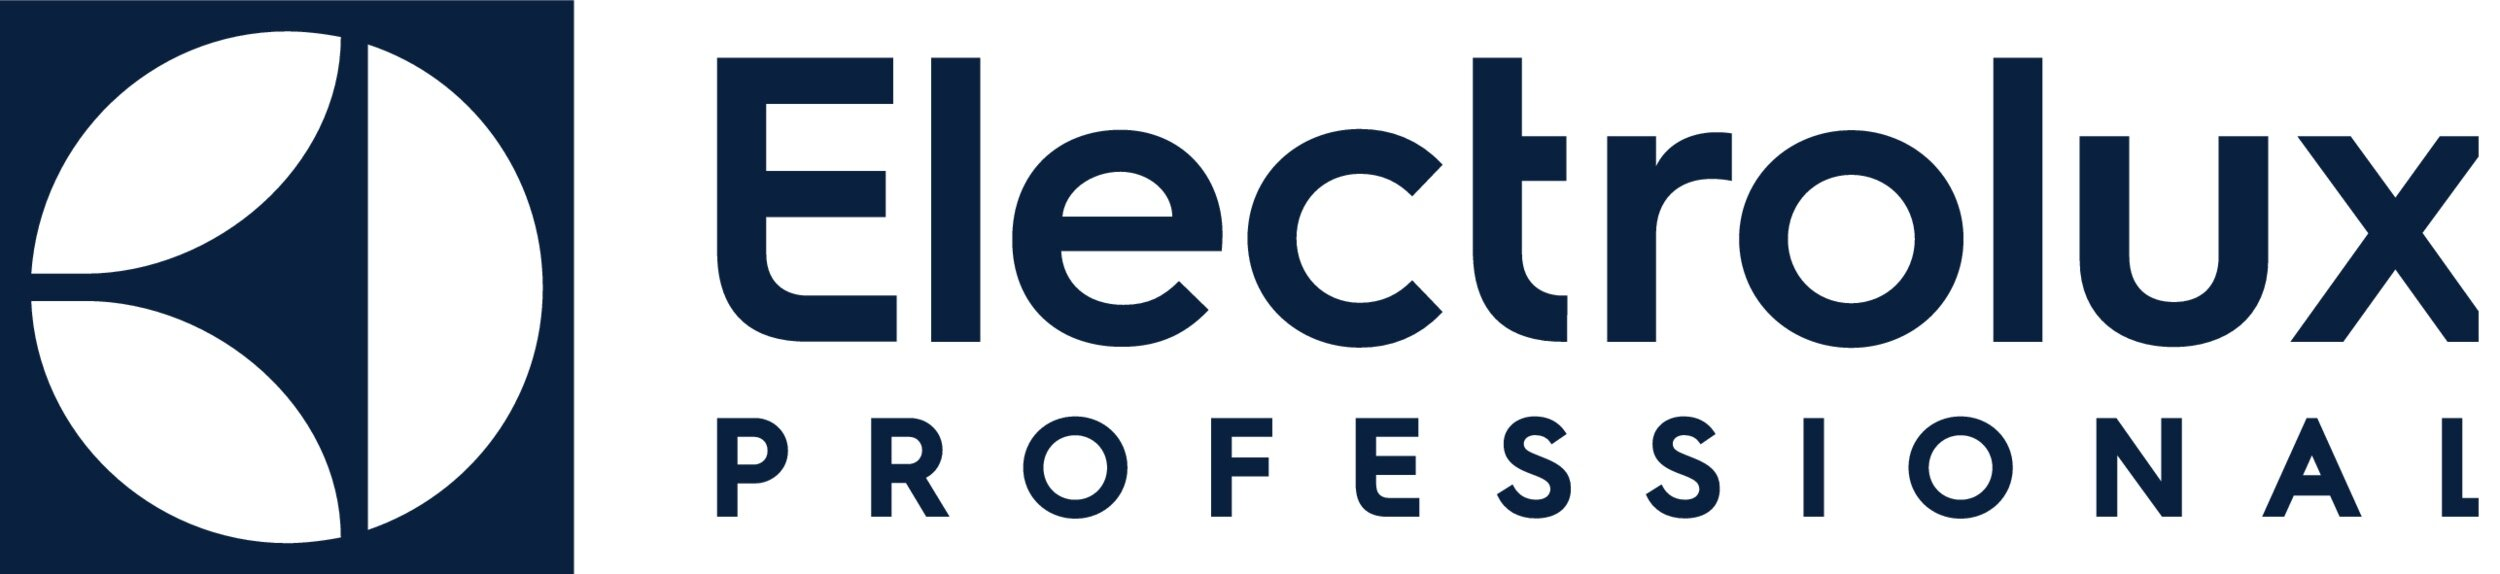 Electrolux_Professional_logo_master_blue_RGB.png